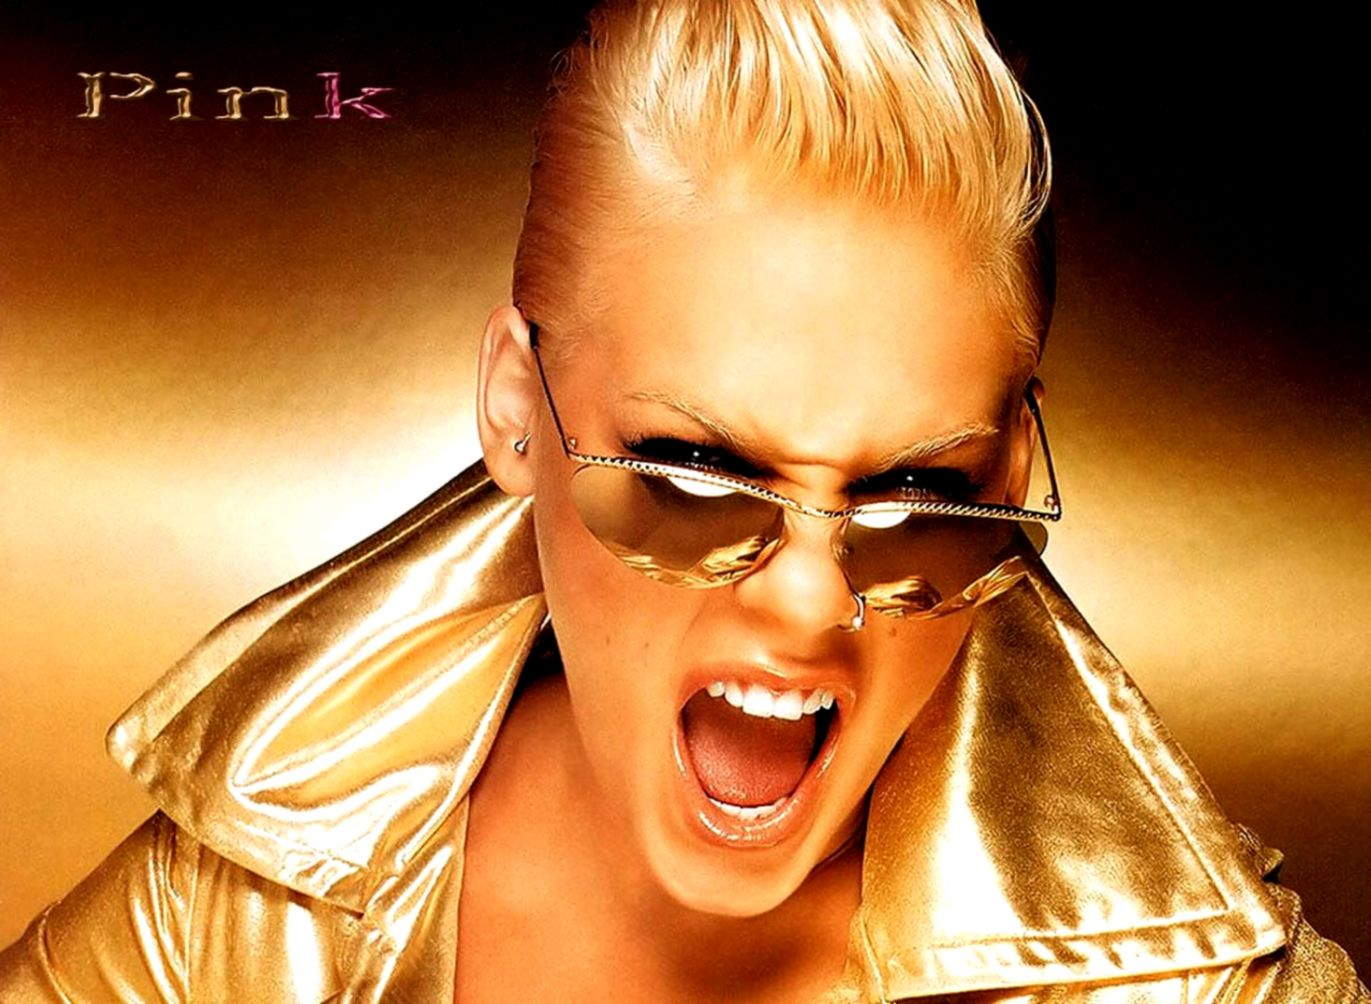 singer pink Bing Images wallpaper wpt7408692